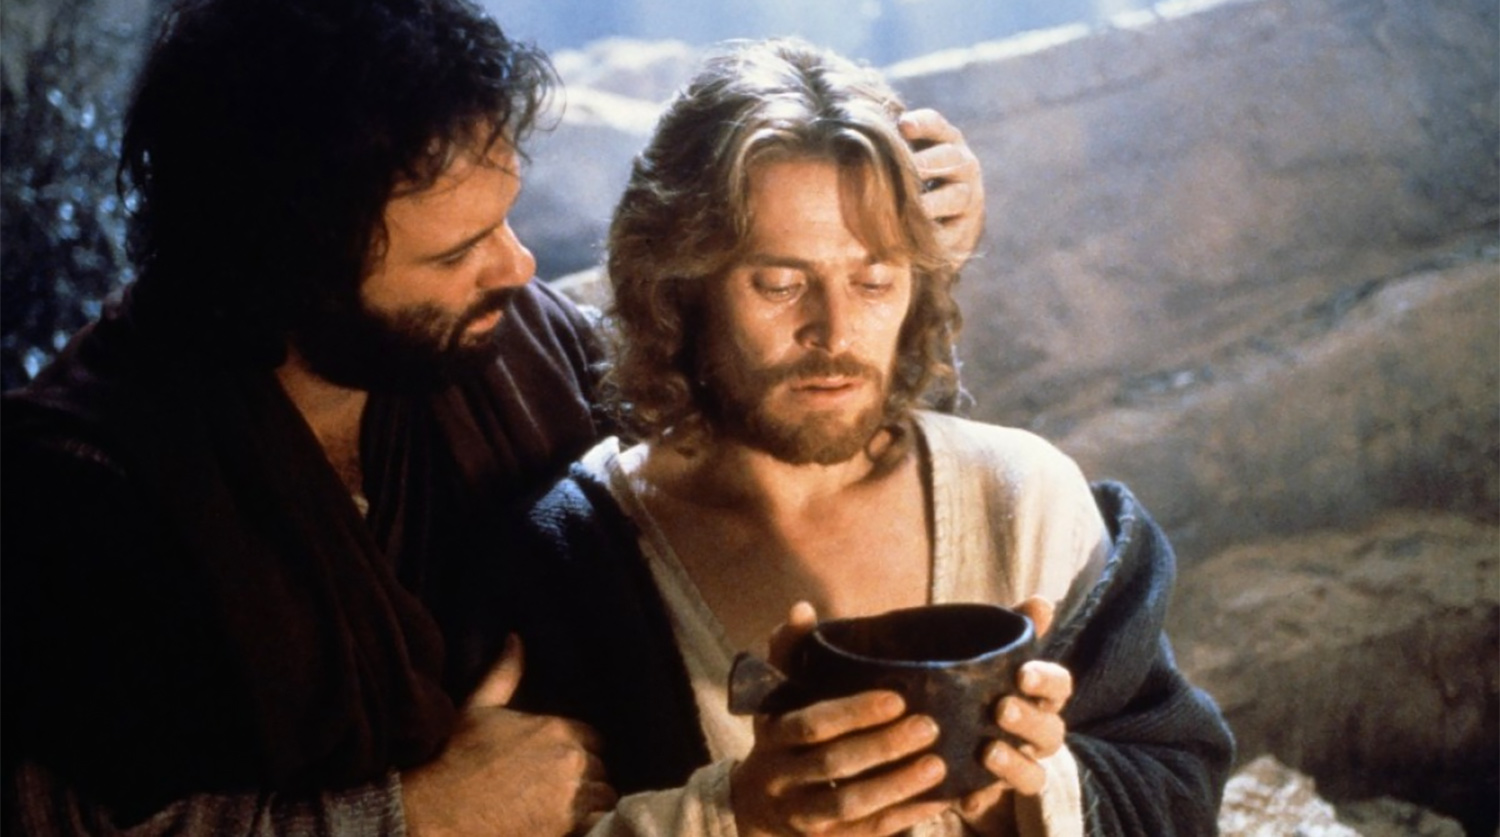 an analysis of the portrayal of jesus christ in the movie the last temptation of christ George stevens's the greatest story ever told (1965), martin scorsese's the last temptation of christ (1988), denys arcand's jesus of montreal (1989), and in.